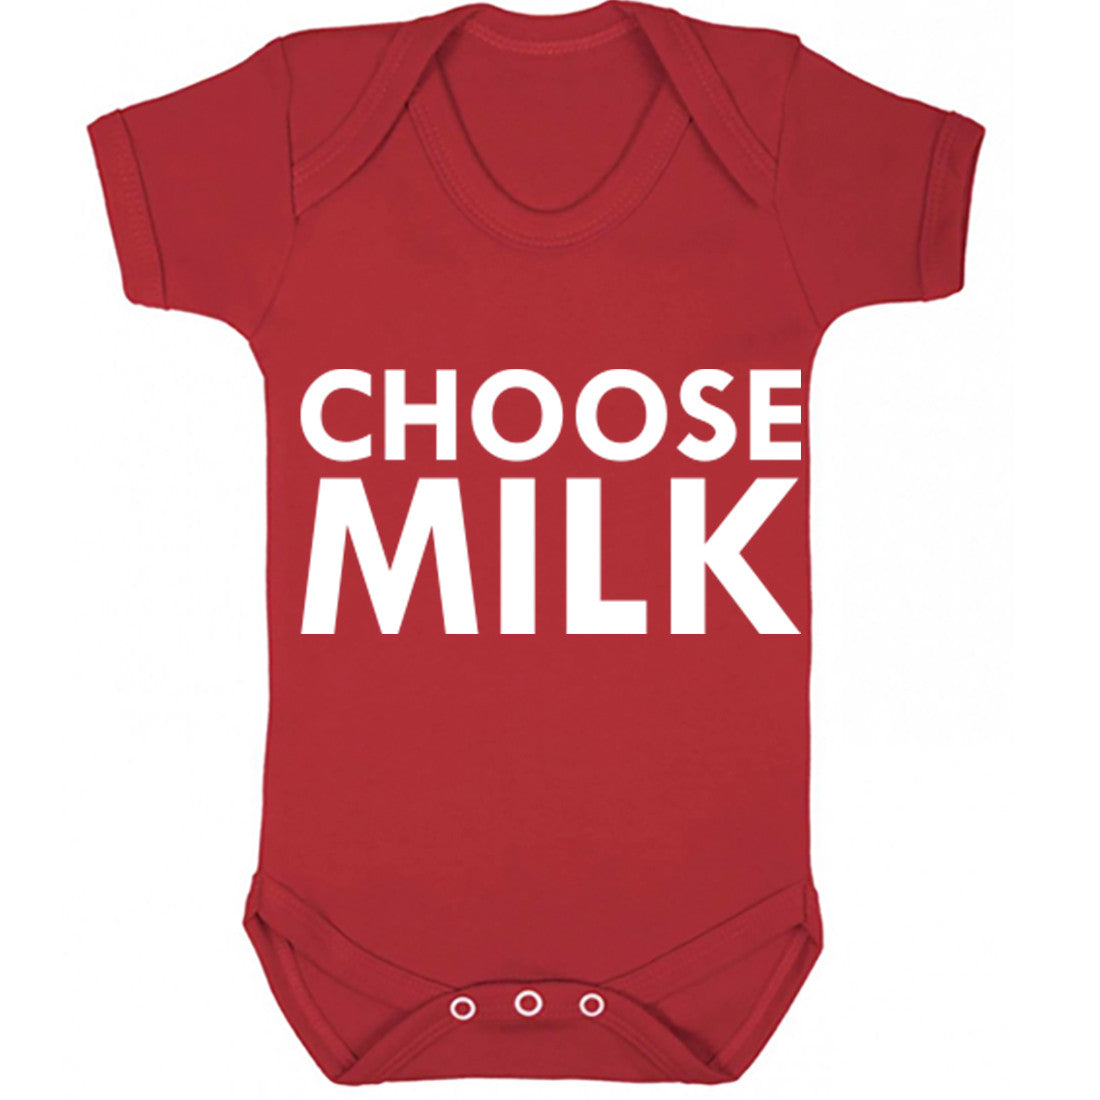 Choose Milk Baby Vest K0004